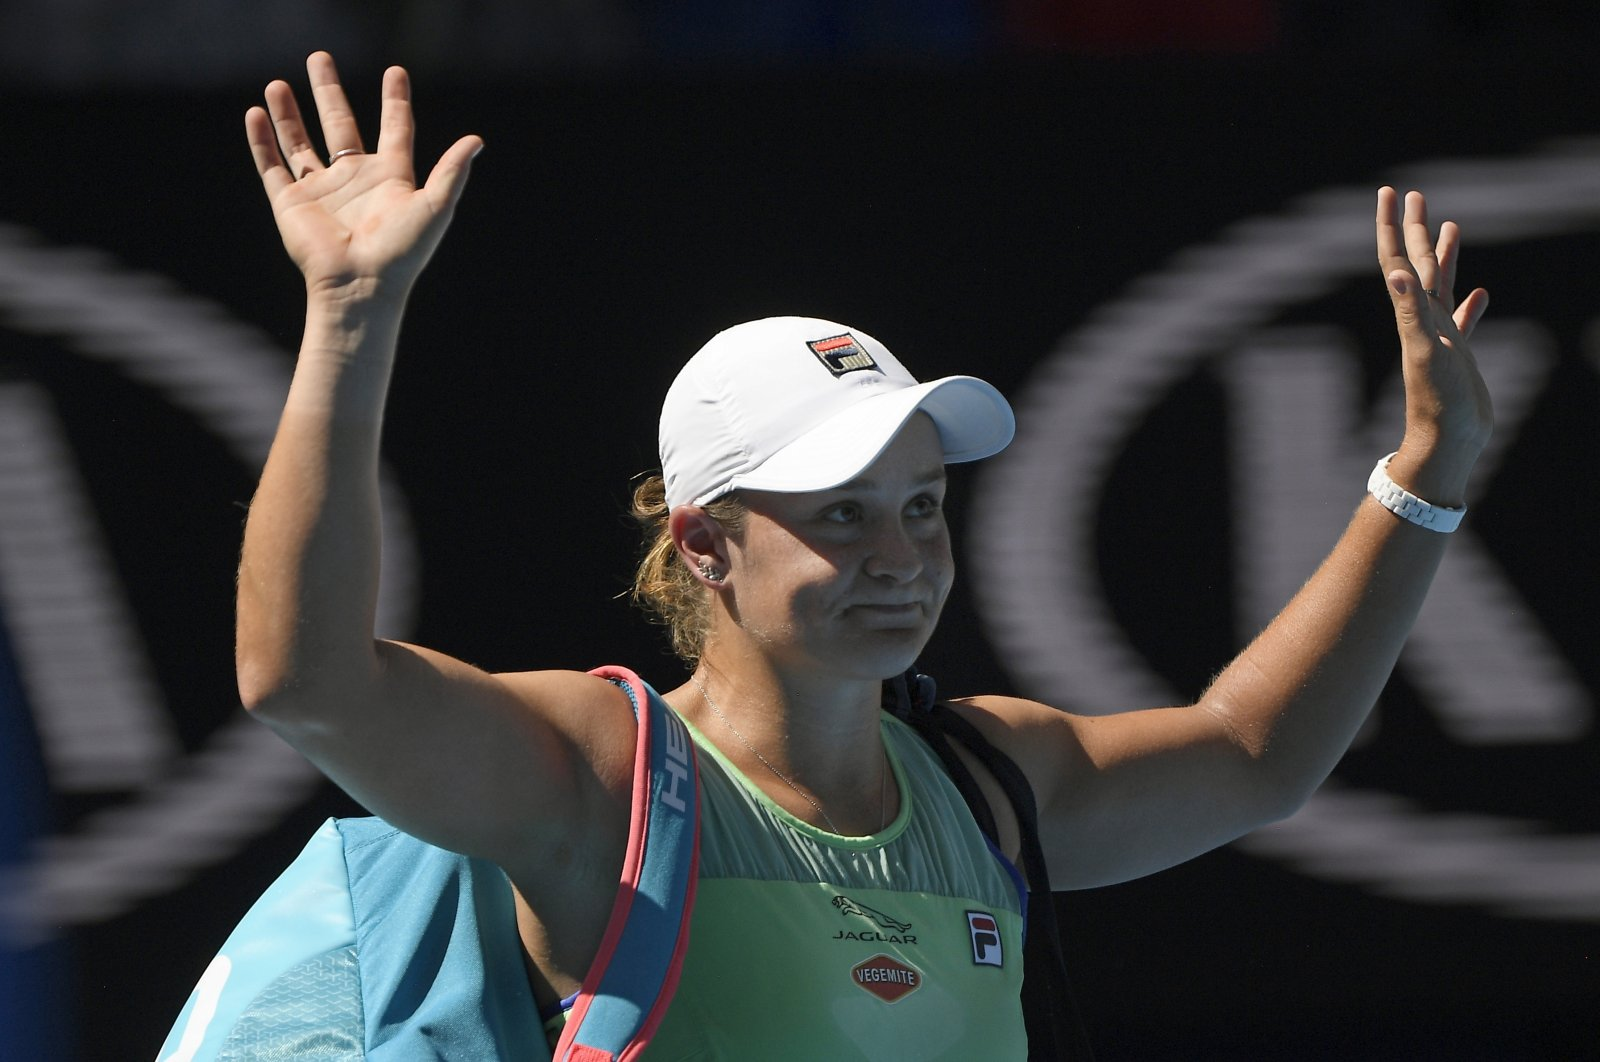 Ashleigh Barty reacts after losing her semifinal against Sofia Kenin at the Australian Open tennis championship in Melbourne, Australia, Jan. 30, 2020. (AP Photo)